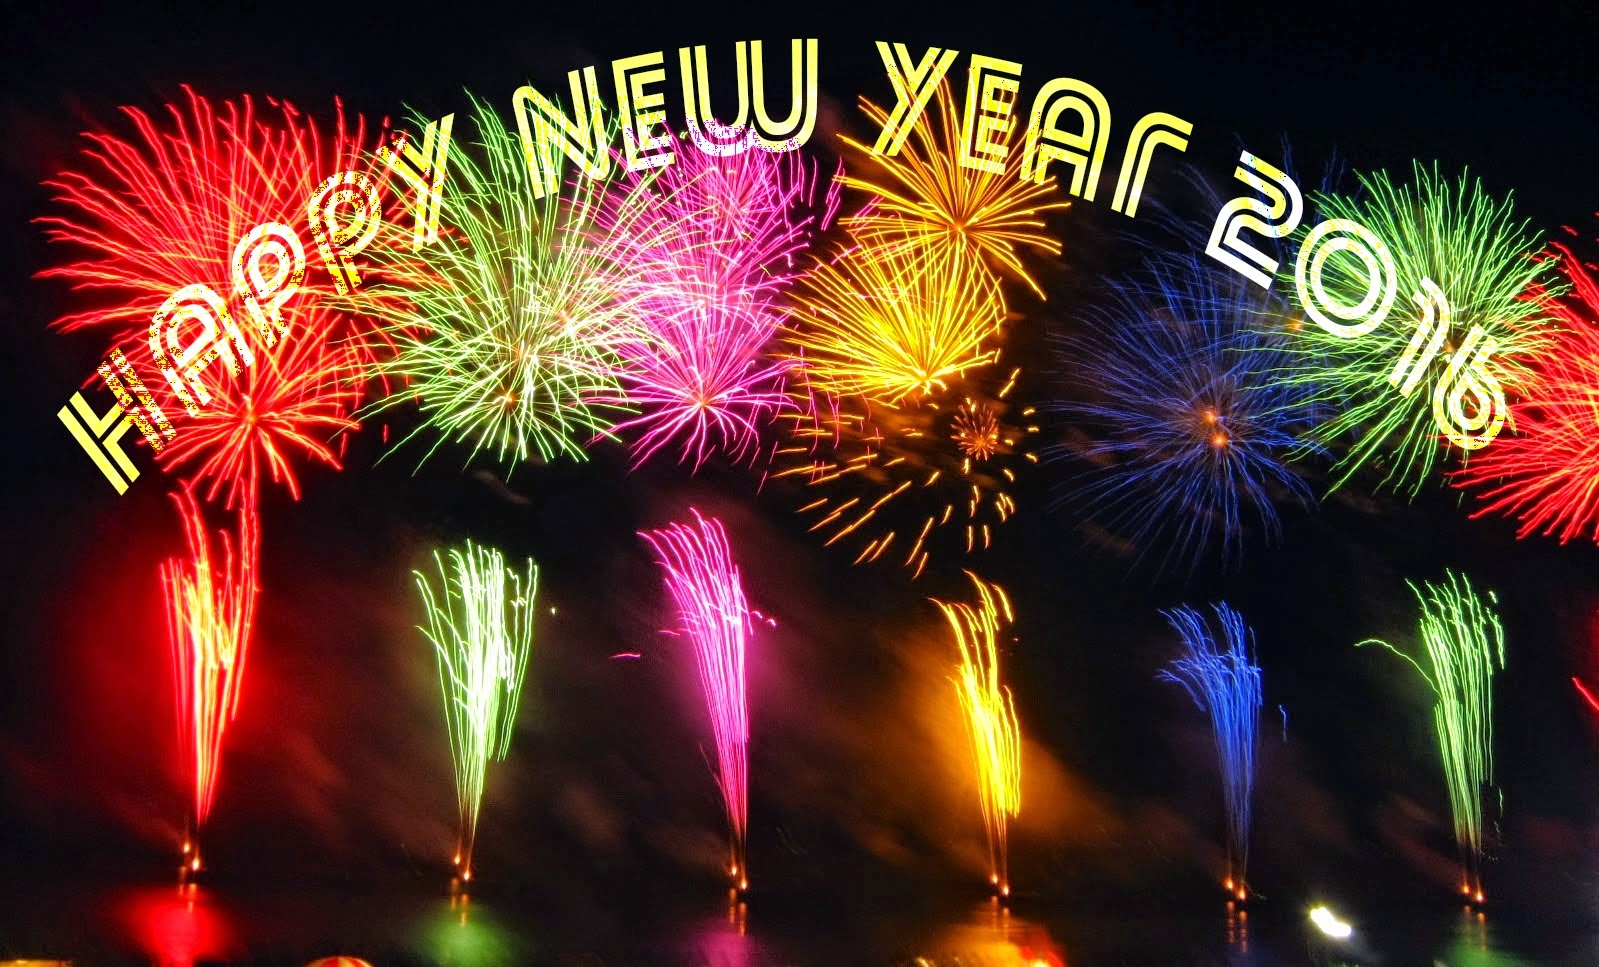 Happy New Year 2016 Facebook Cover Images 1080px